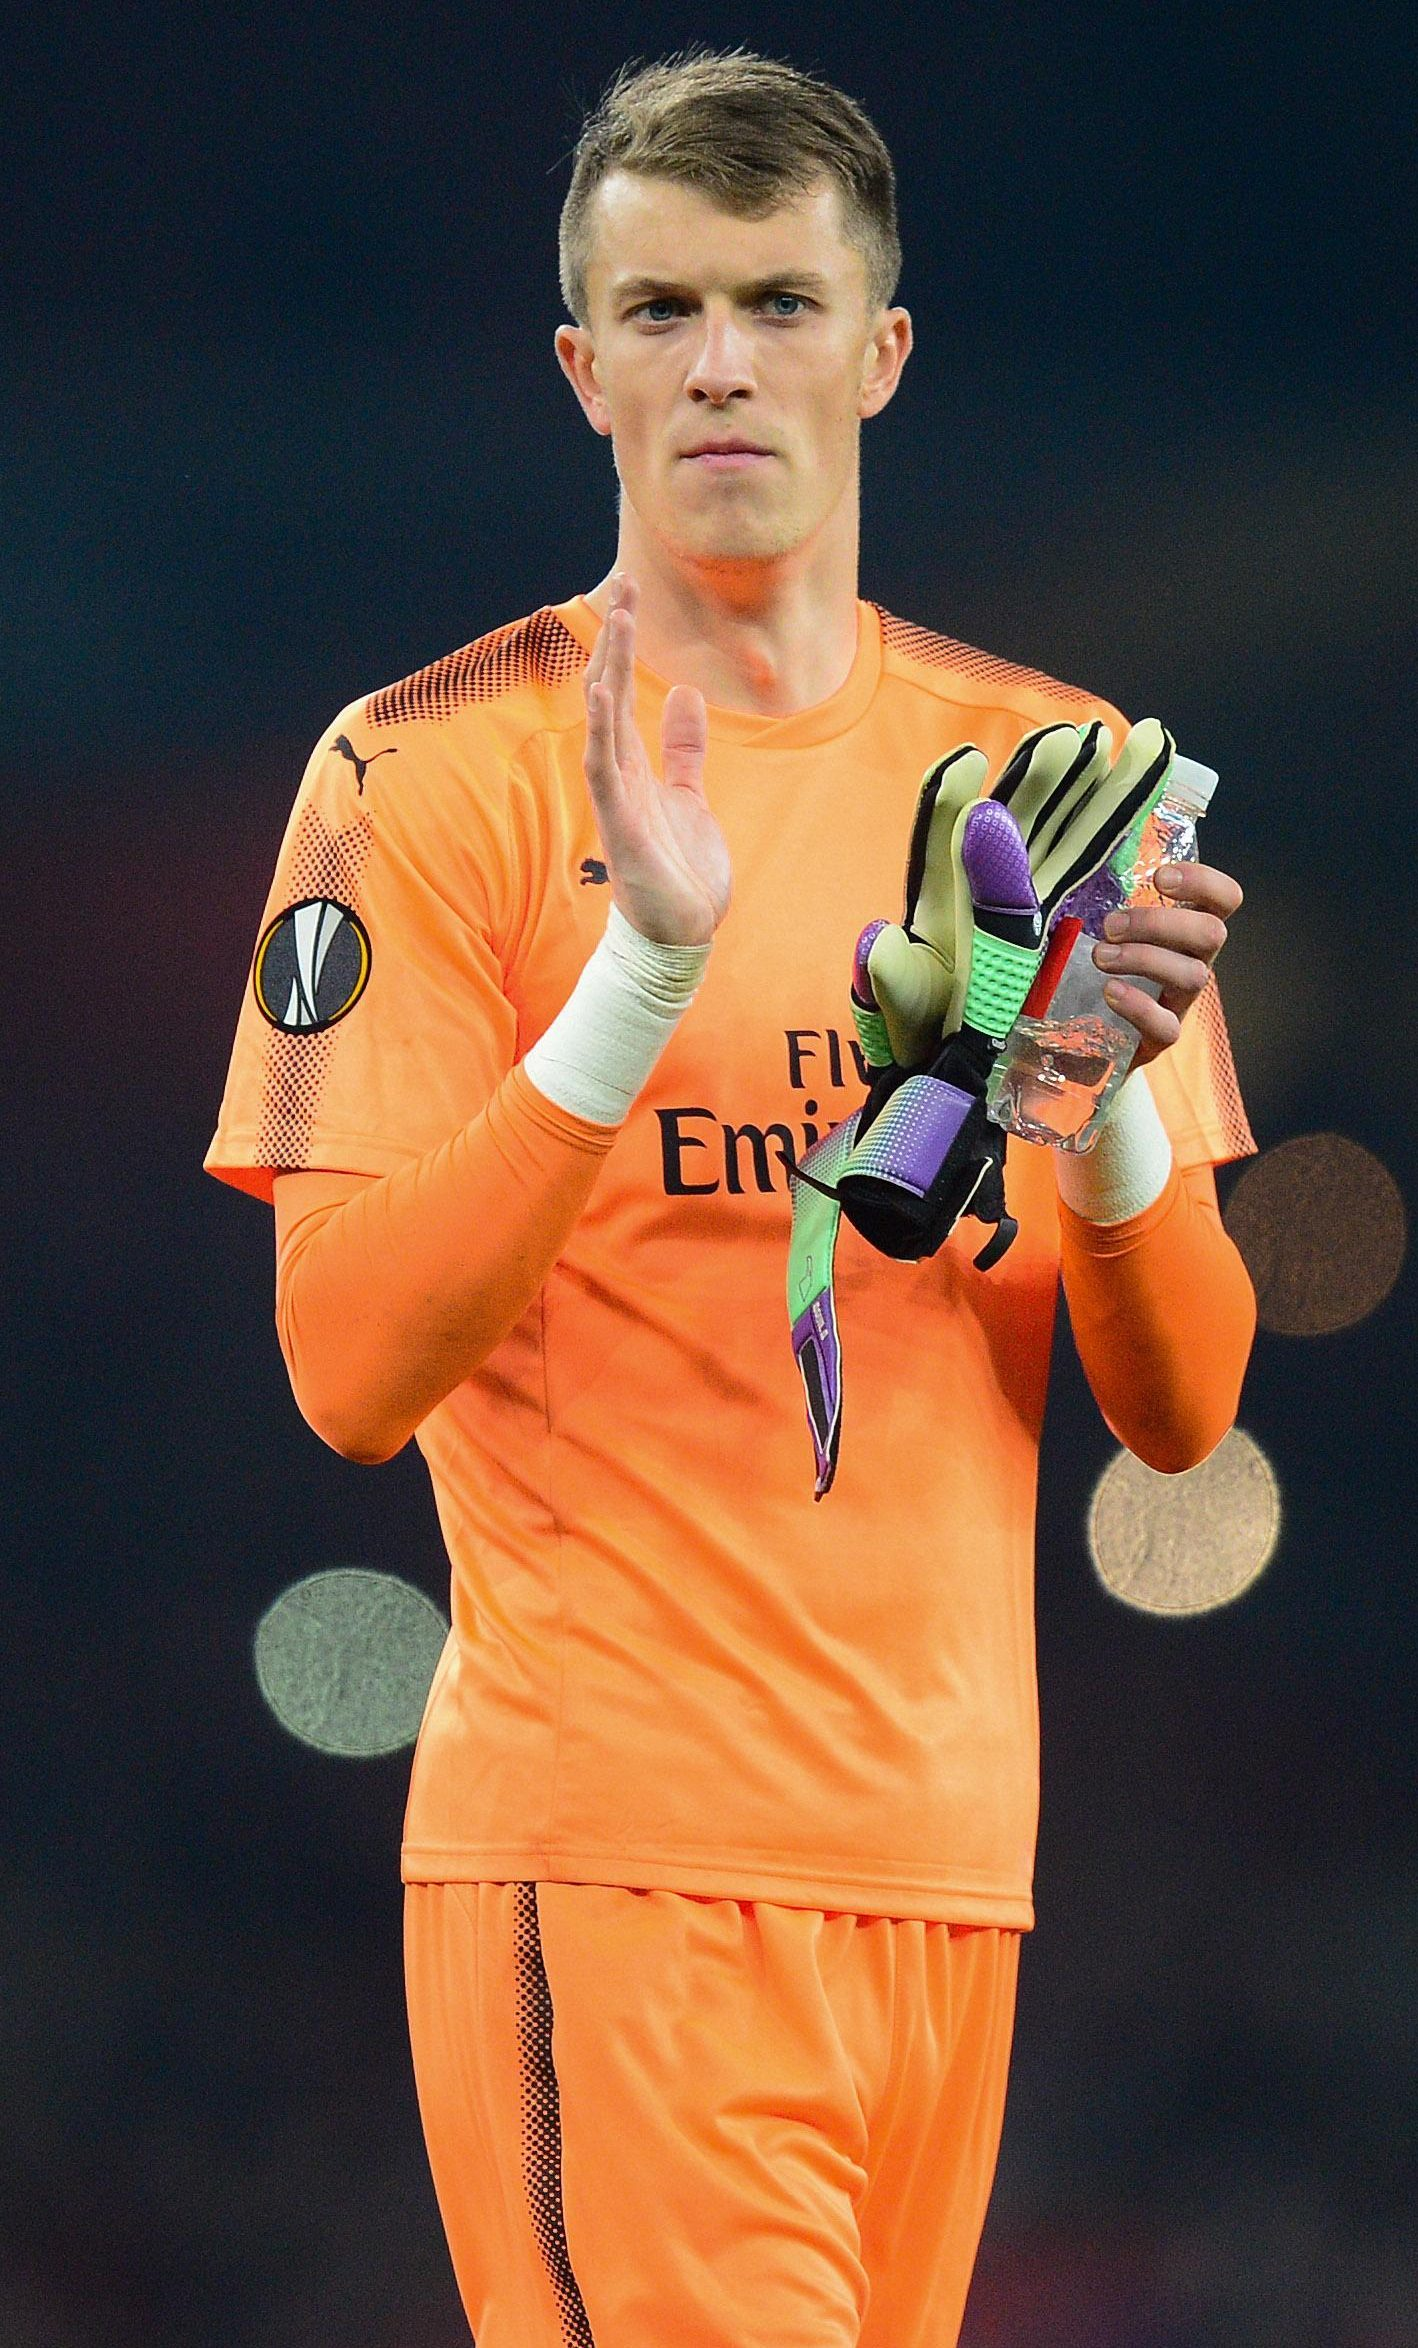 Macey has been sent on loan, rather than spending another year stuck behind the likes of Petr Cech and Bernd Leno